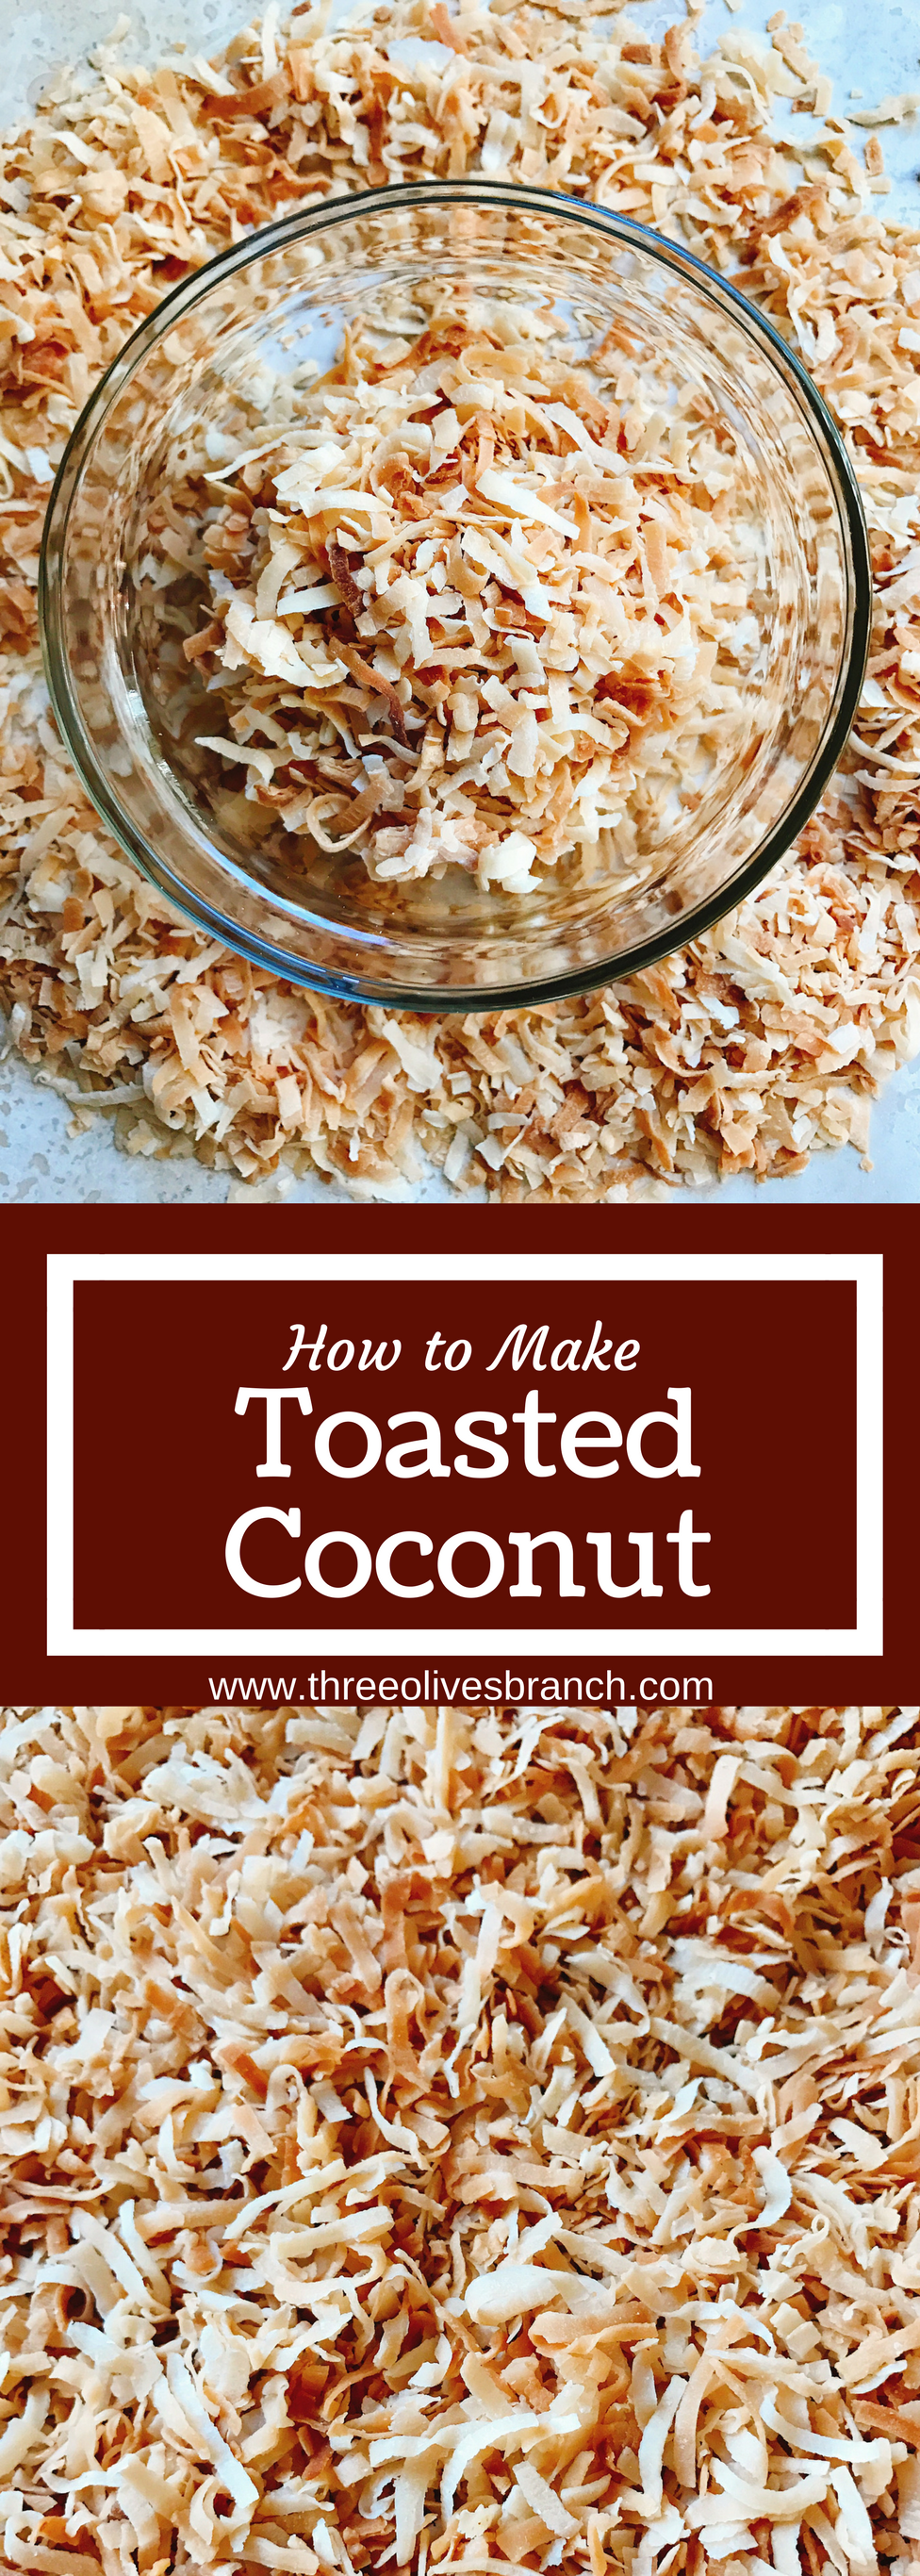 to Toast Coconut Learn how to make toasted coconut in minutes! Perfect for your holiday baking and desserts. Toasting brings out a nuttiness and texture to coconut. Great for Christmas cookies and baking, snacks, breakfasts, and all types of desserts. Make as much as you need! Vegan and vegetarian. Fas